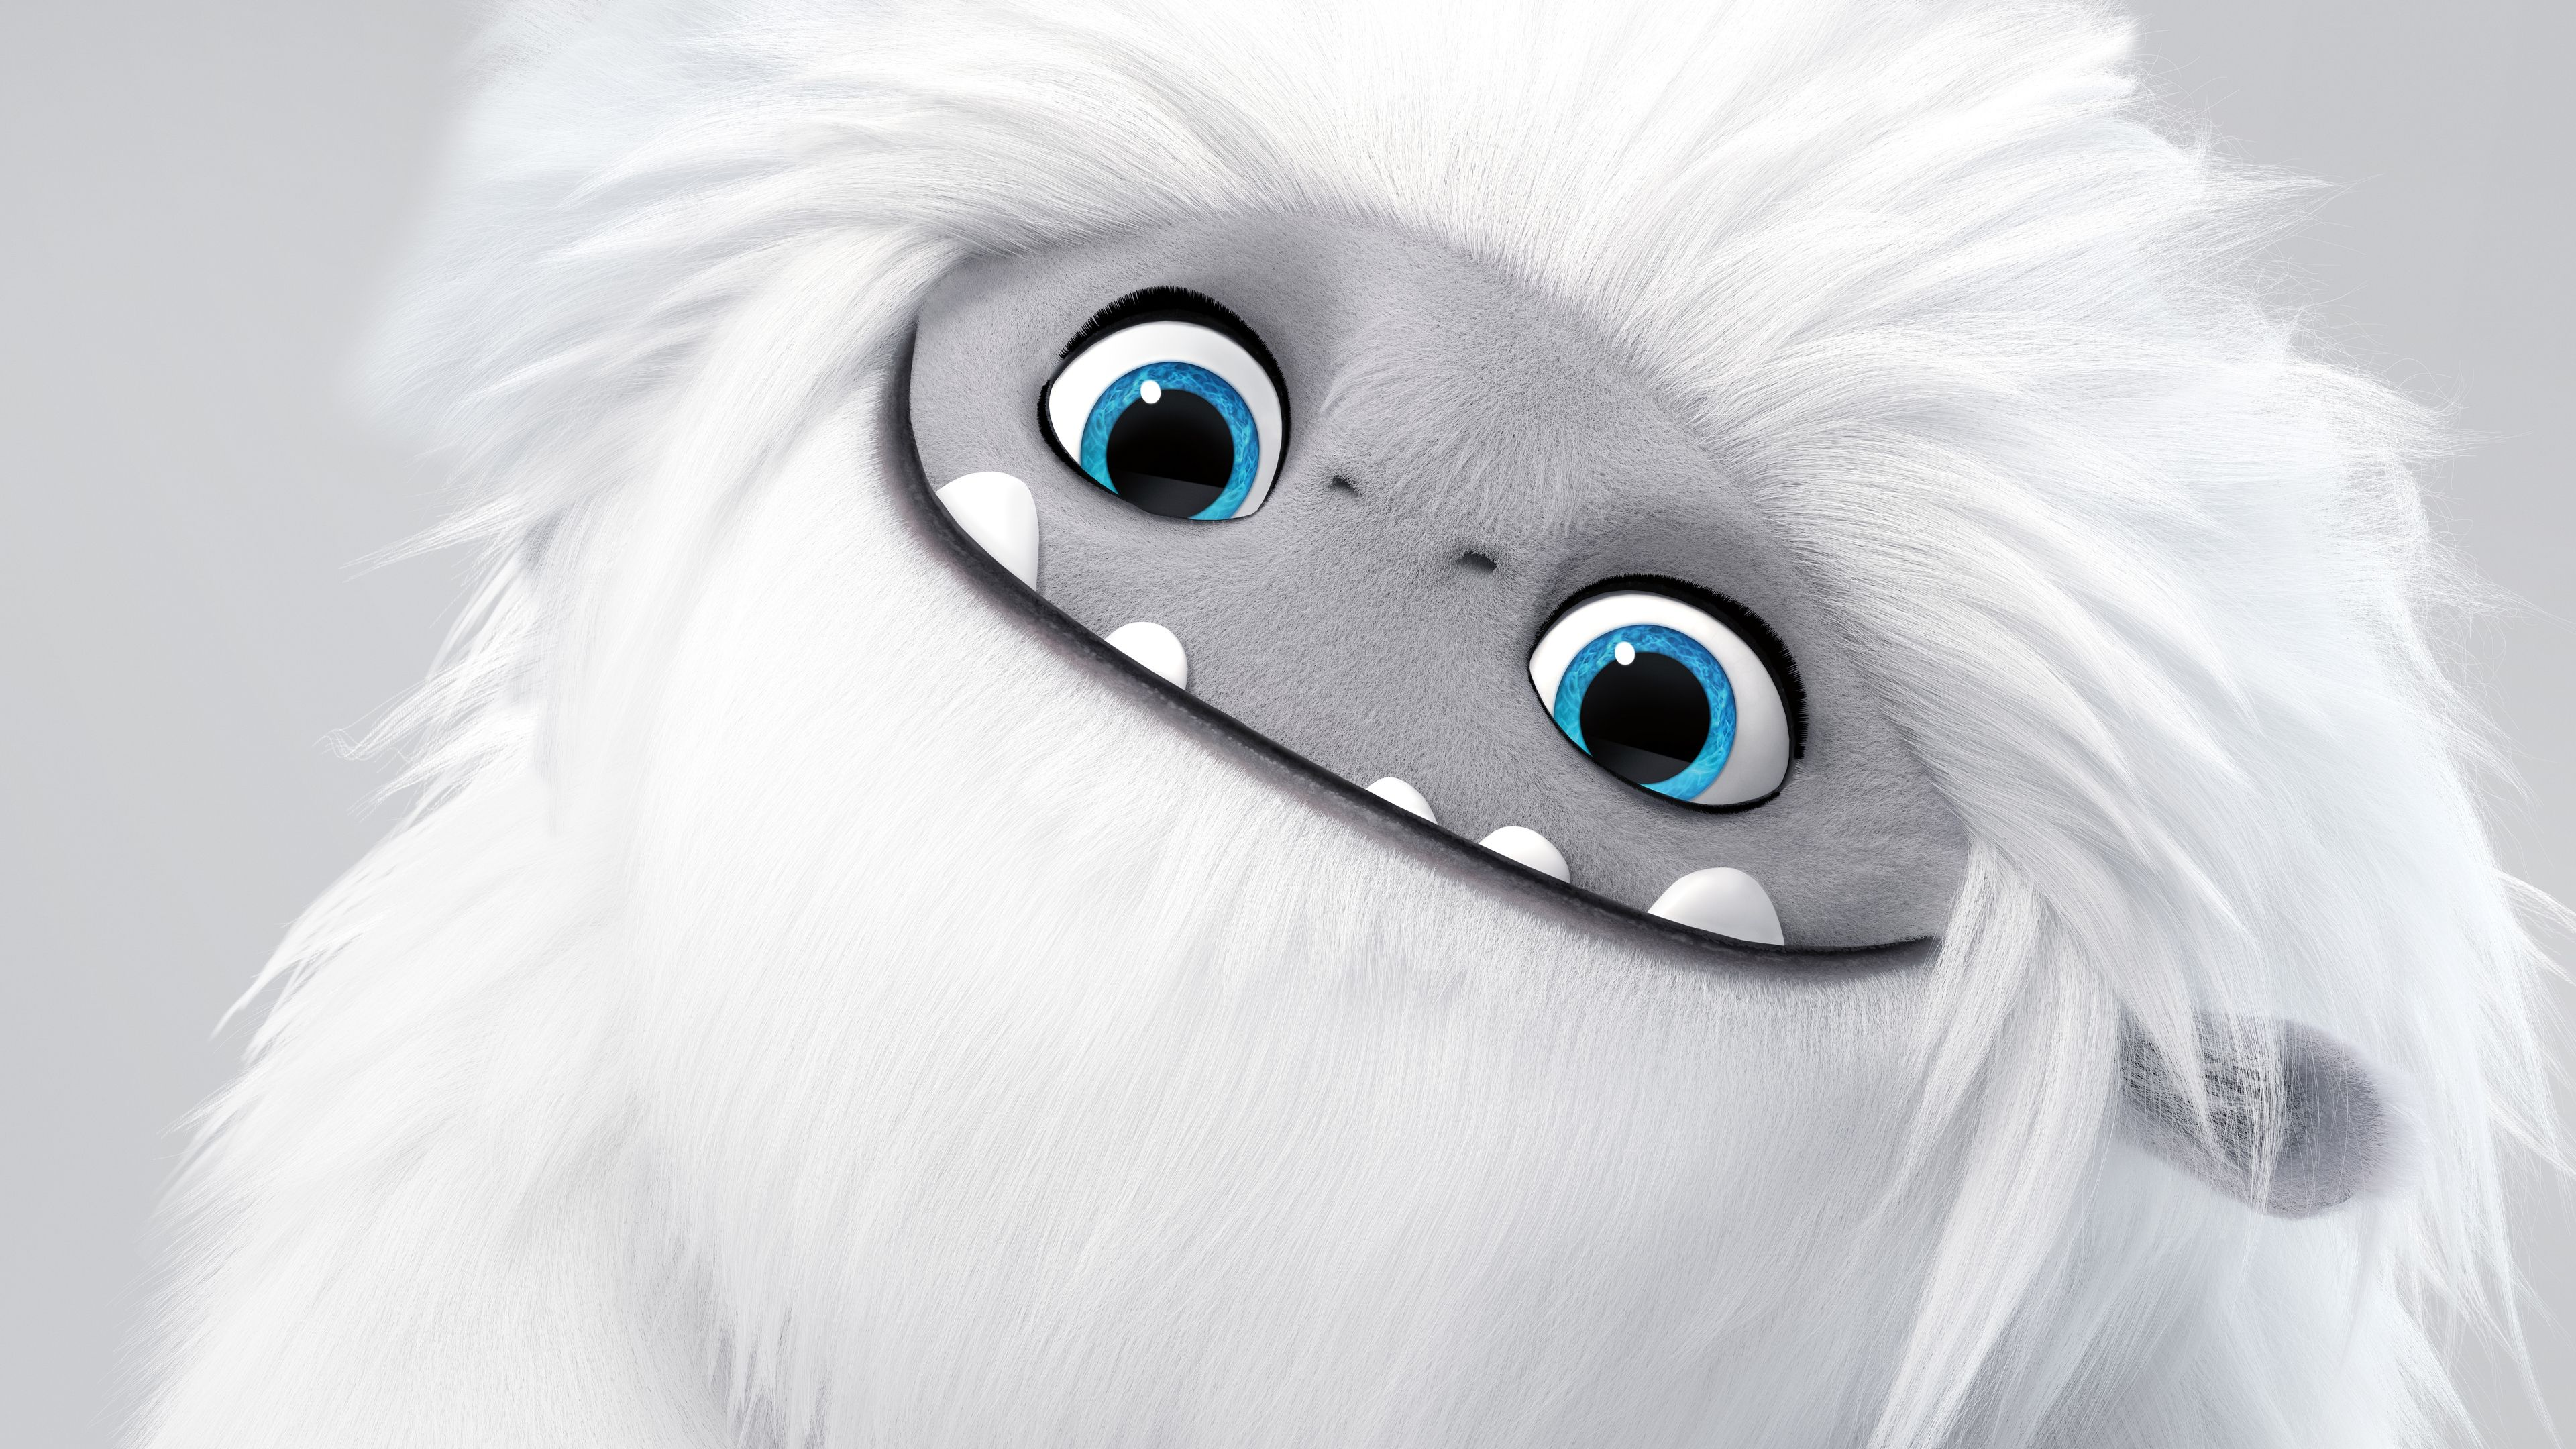 Abominable 2019 4k Hd Wallpapers Animated Movies Wallpapers Abominable Wallpapers 4k Wallpapers 2019 Movies W Movie Wallpapers Movie Scenes Animated Movies